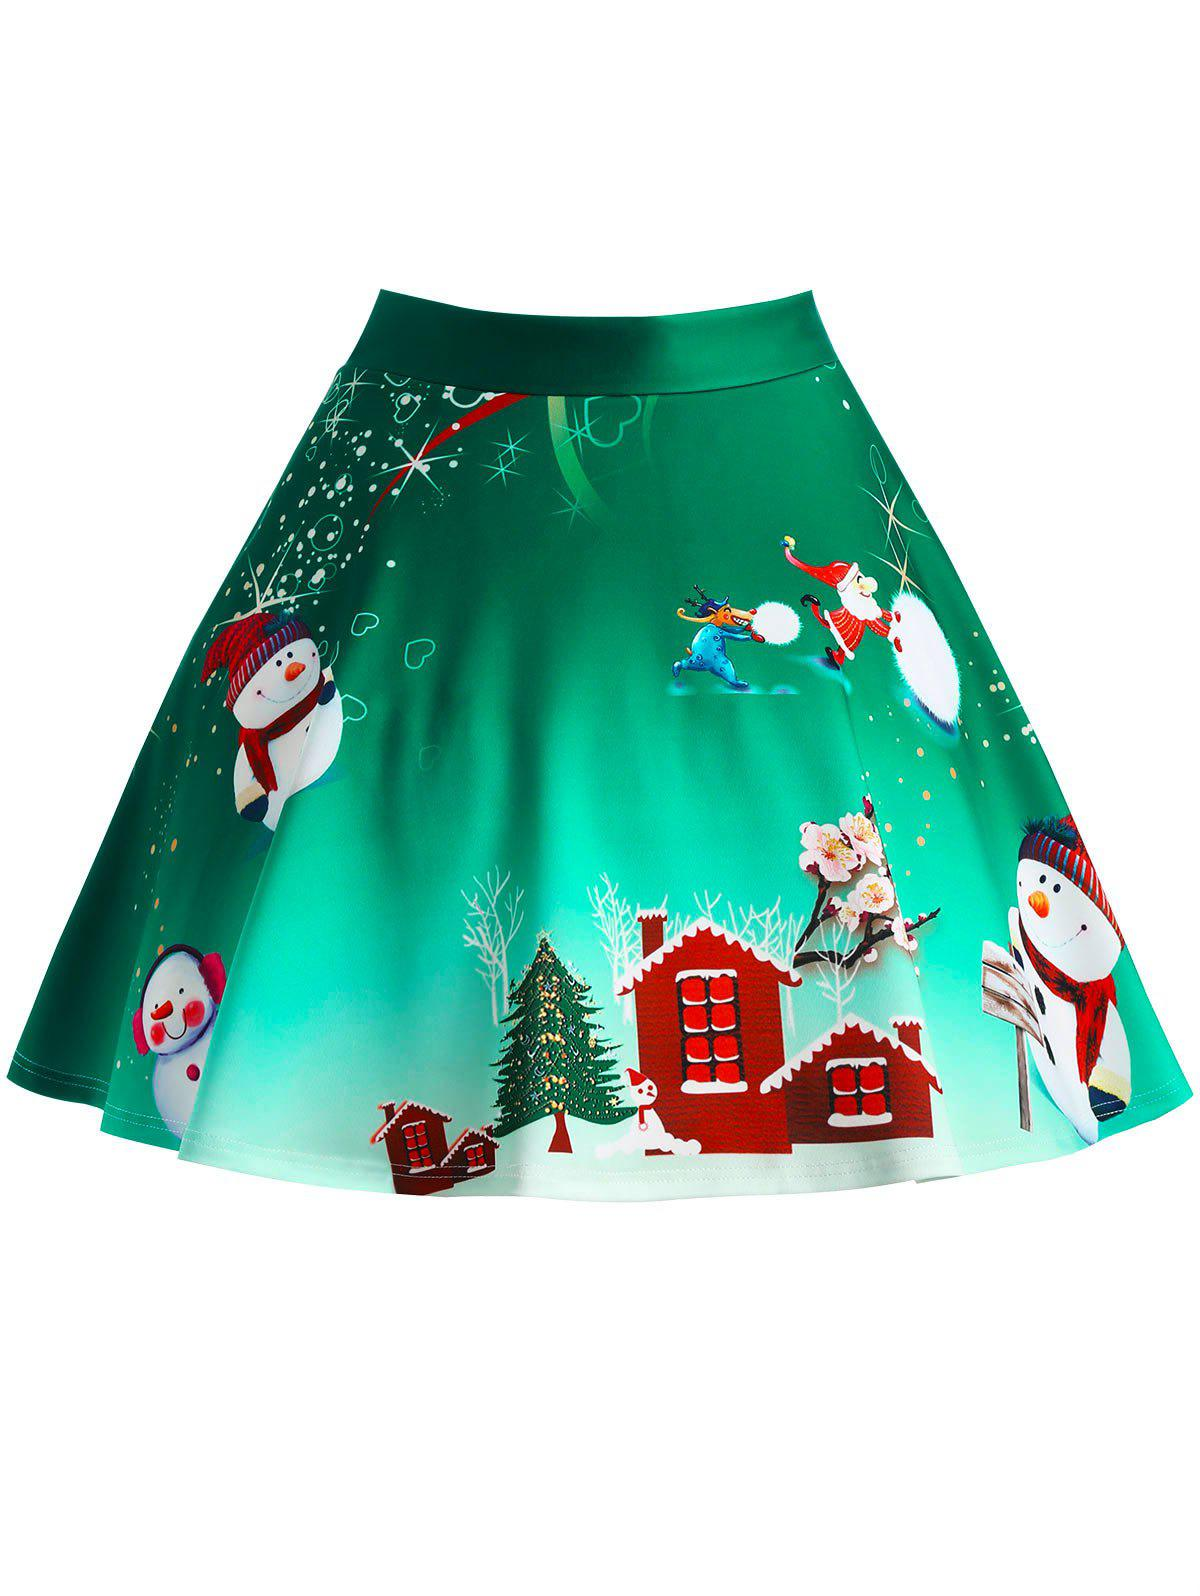 Christmas Tree Snowman Wintersweet Print Ombre SkirtWOMEN<br><br>Size: 2XL; Color: GREEN; Material: Polyester,Spandex; Length: Mini; Silhouette: A-Line; Pattern Type: Print; Season: Winter; With Belt: No; Weight: 0.3300kg; Package Contents: 1 x Skirt;